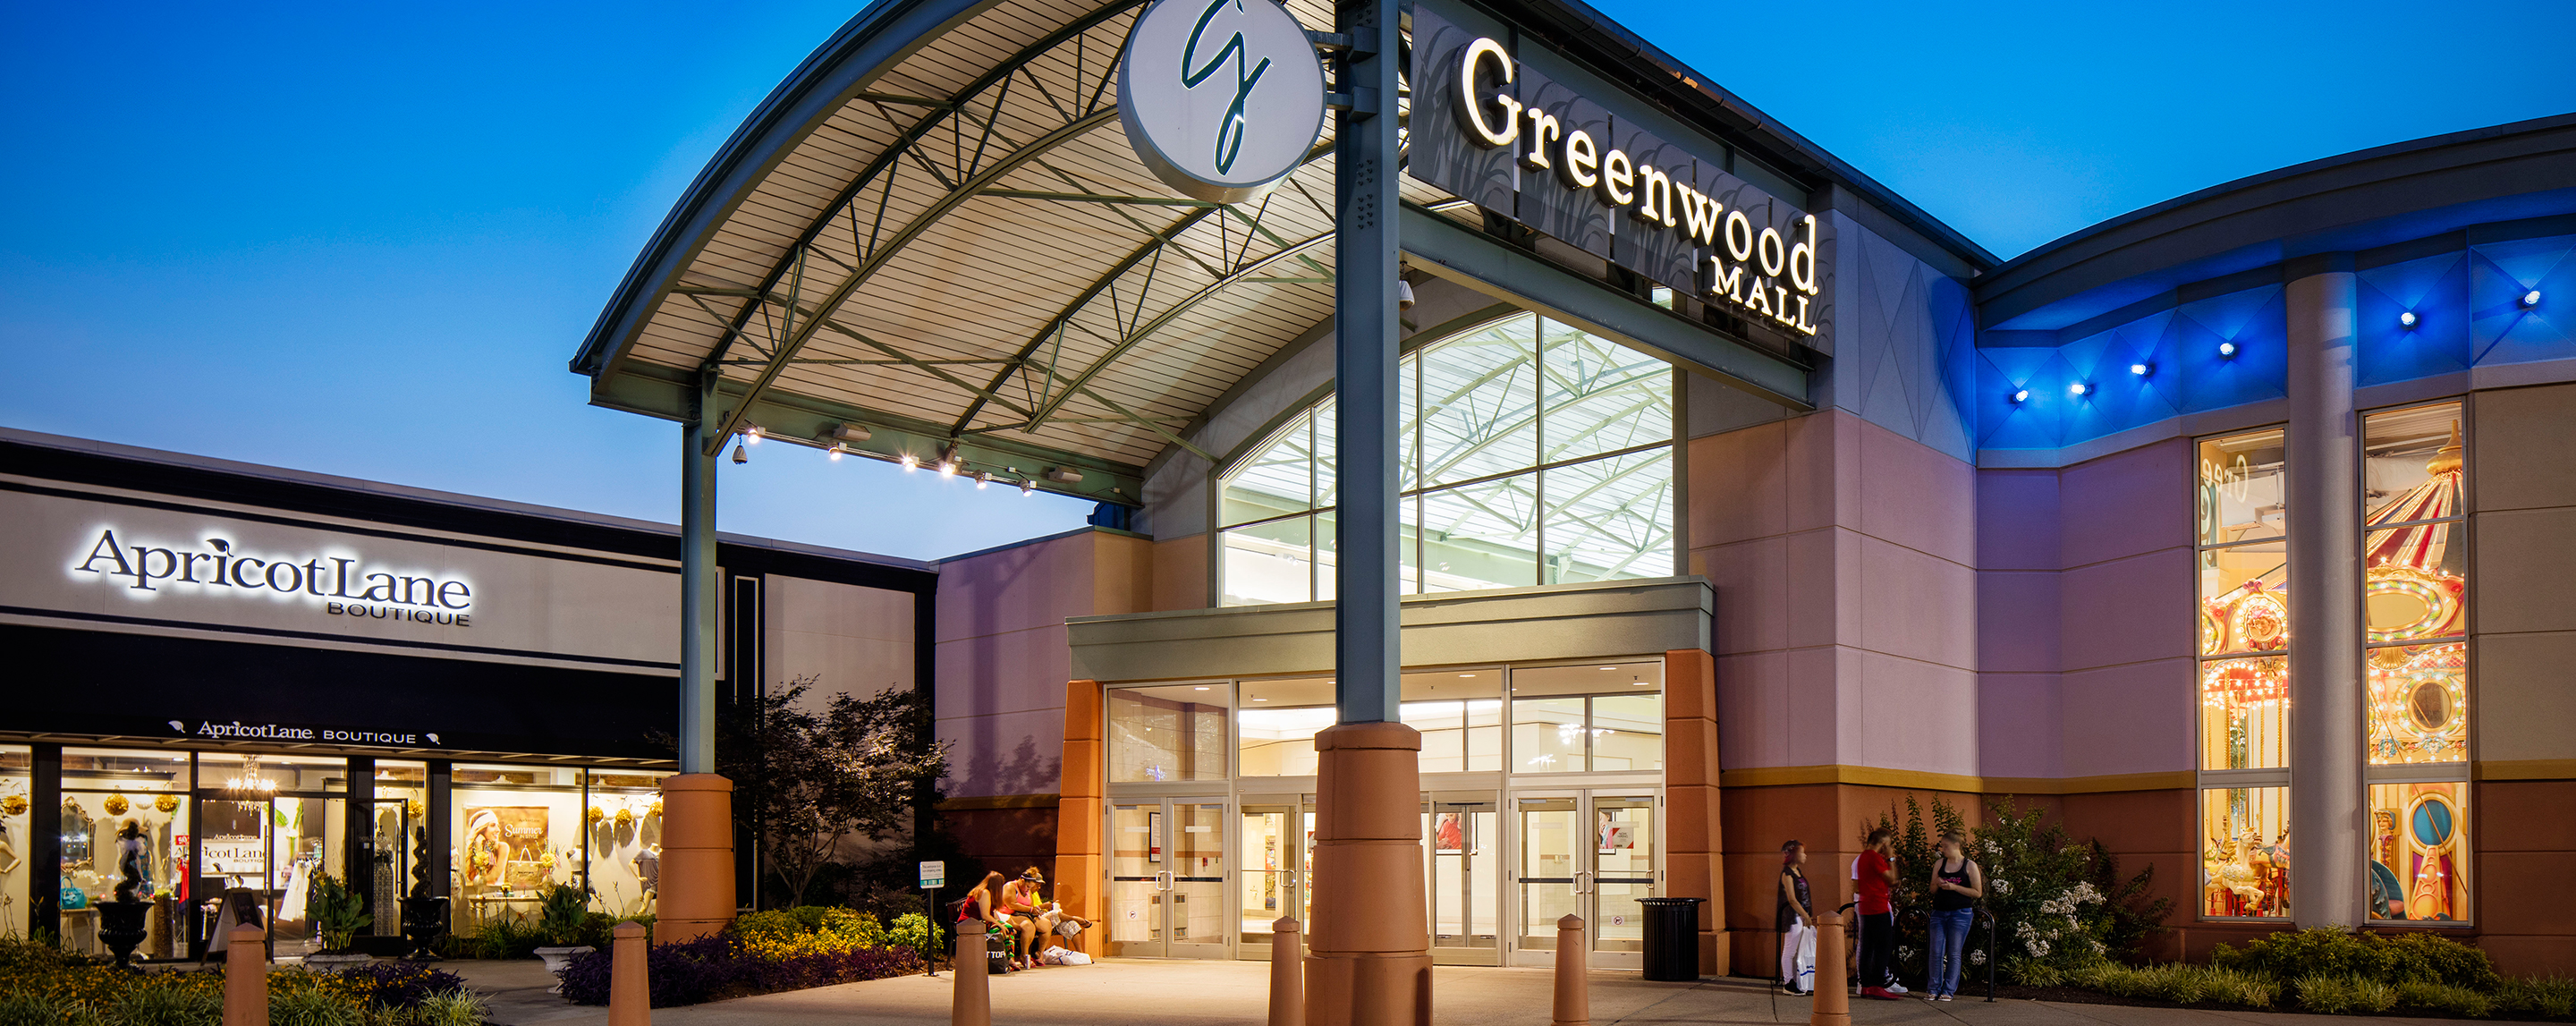 At night the exterior entrance of the Greenwood Mall is bright and welcoming as shoppers sit on benches to rest or meet up with friends.